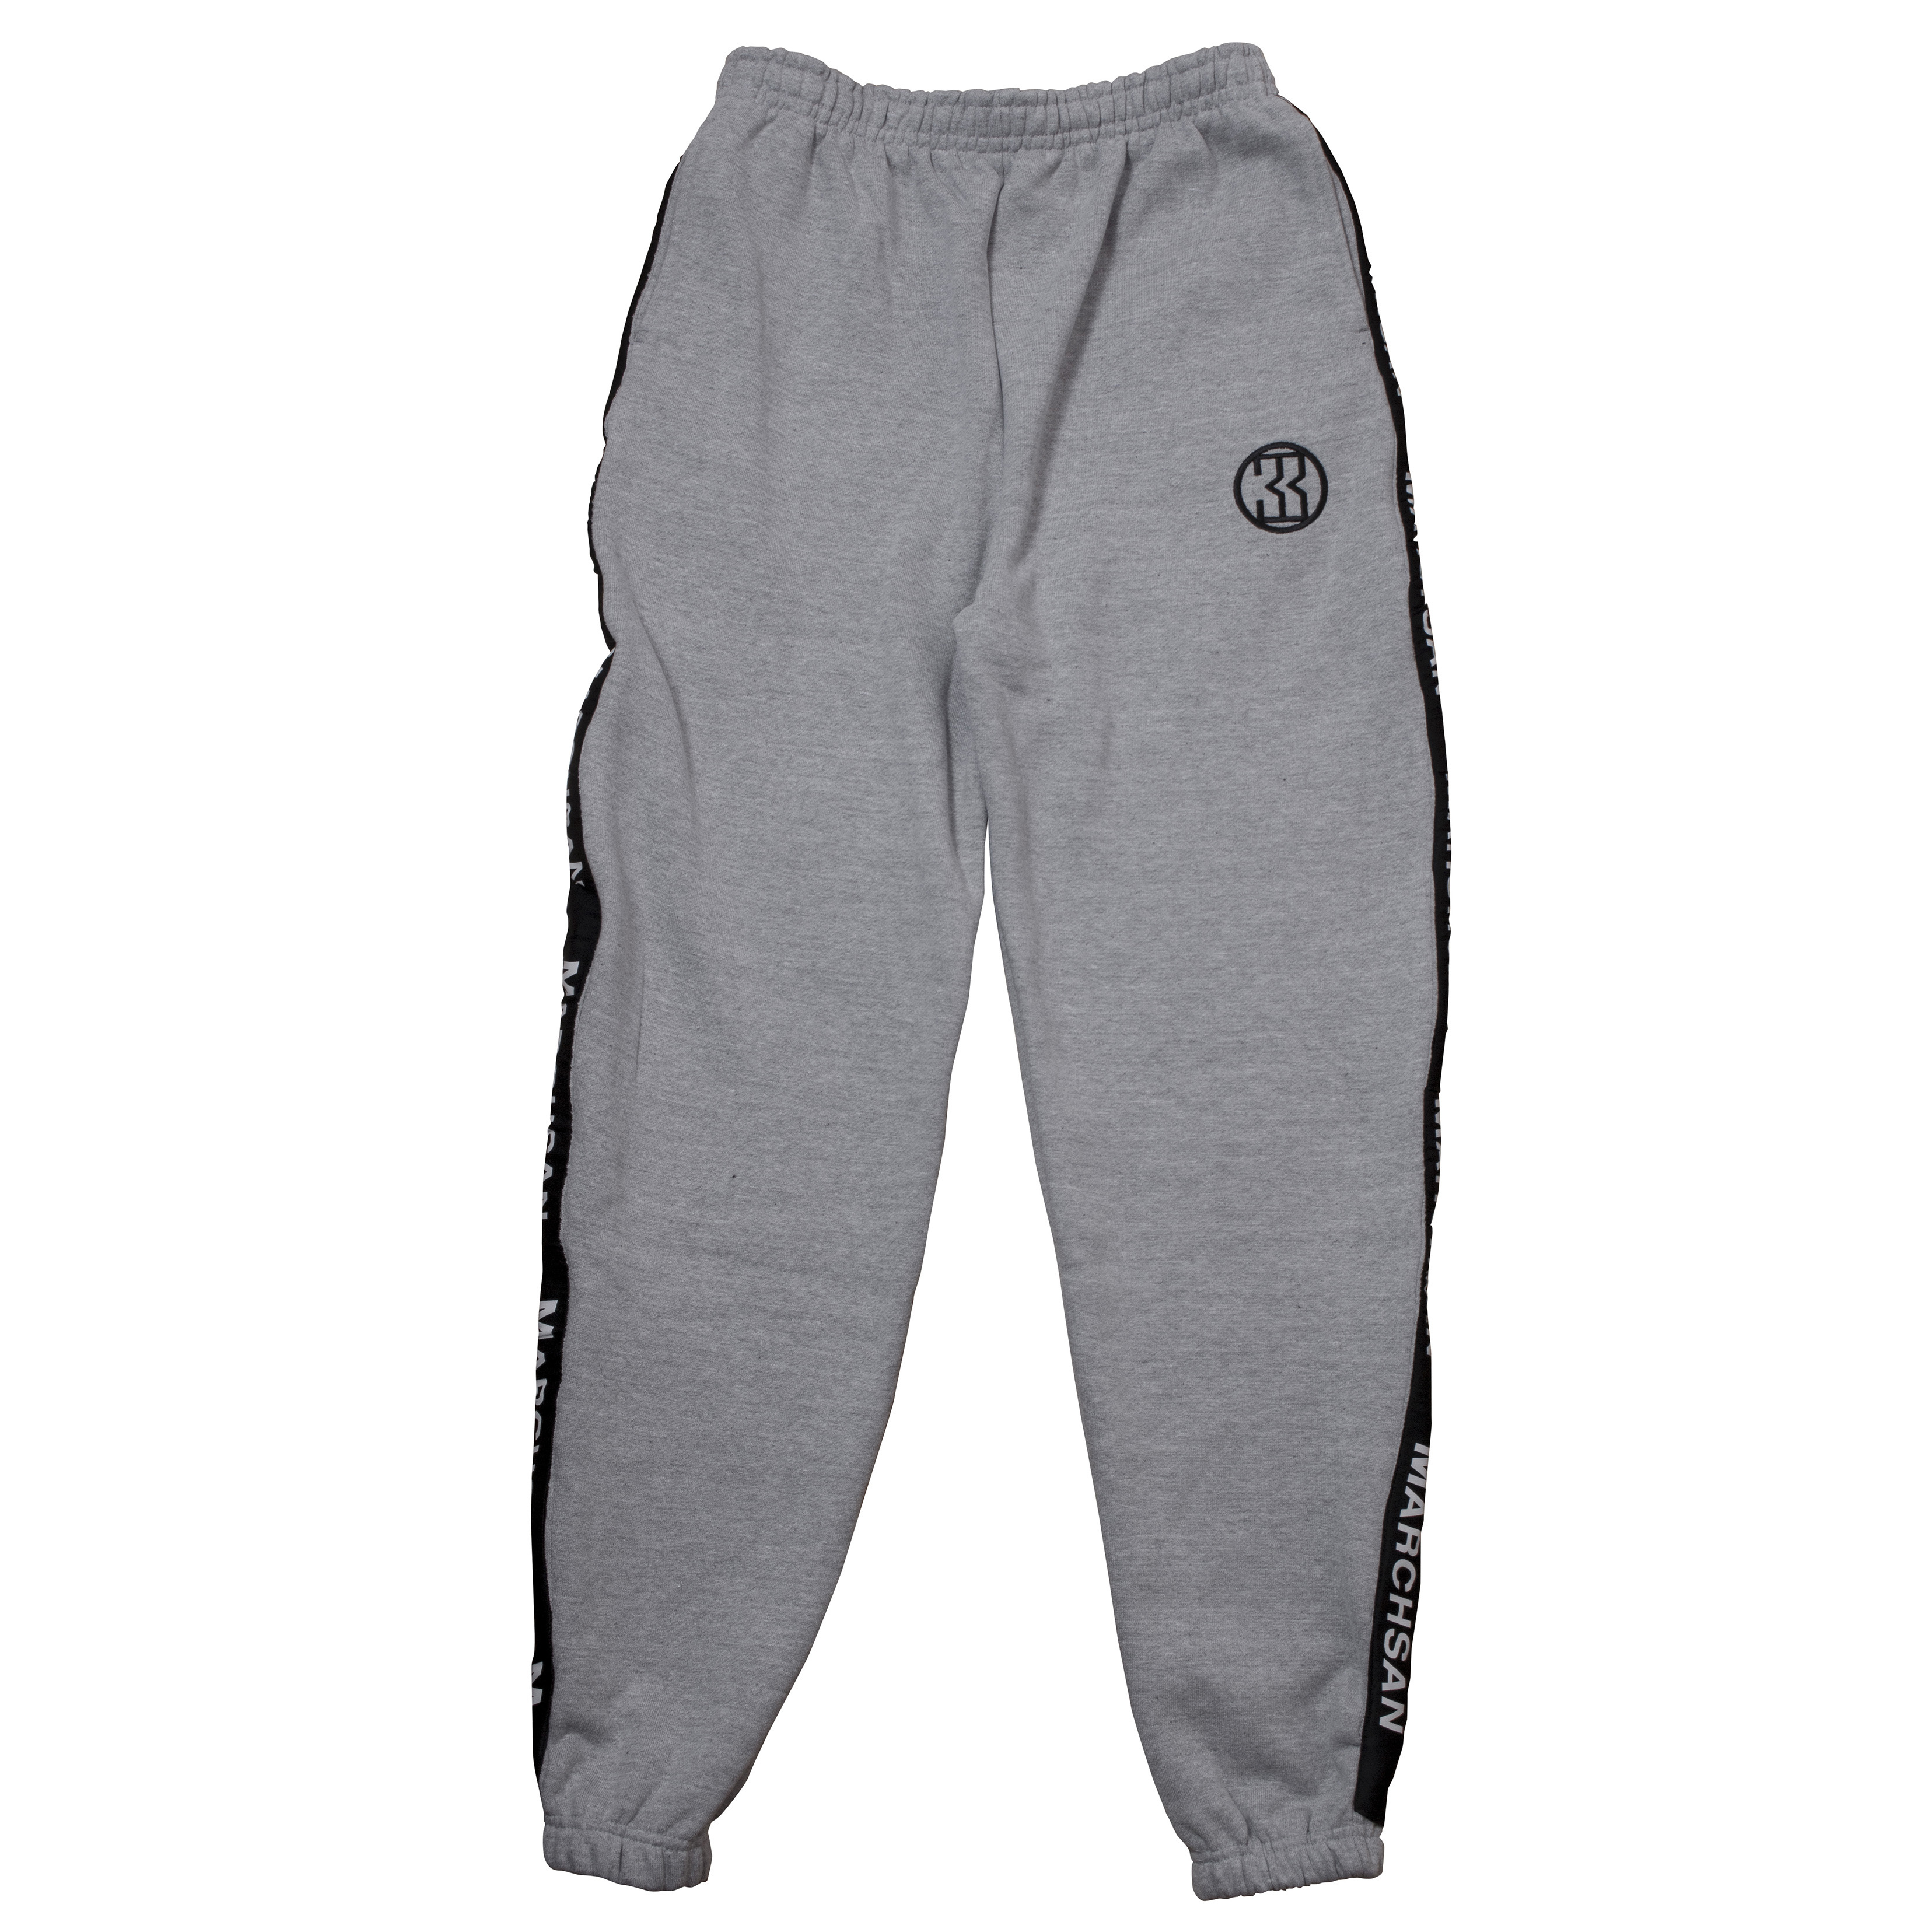 ORIGINAL Trainer pants 010(Gray)